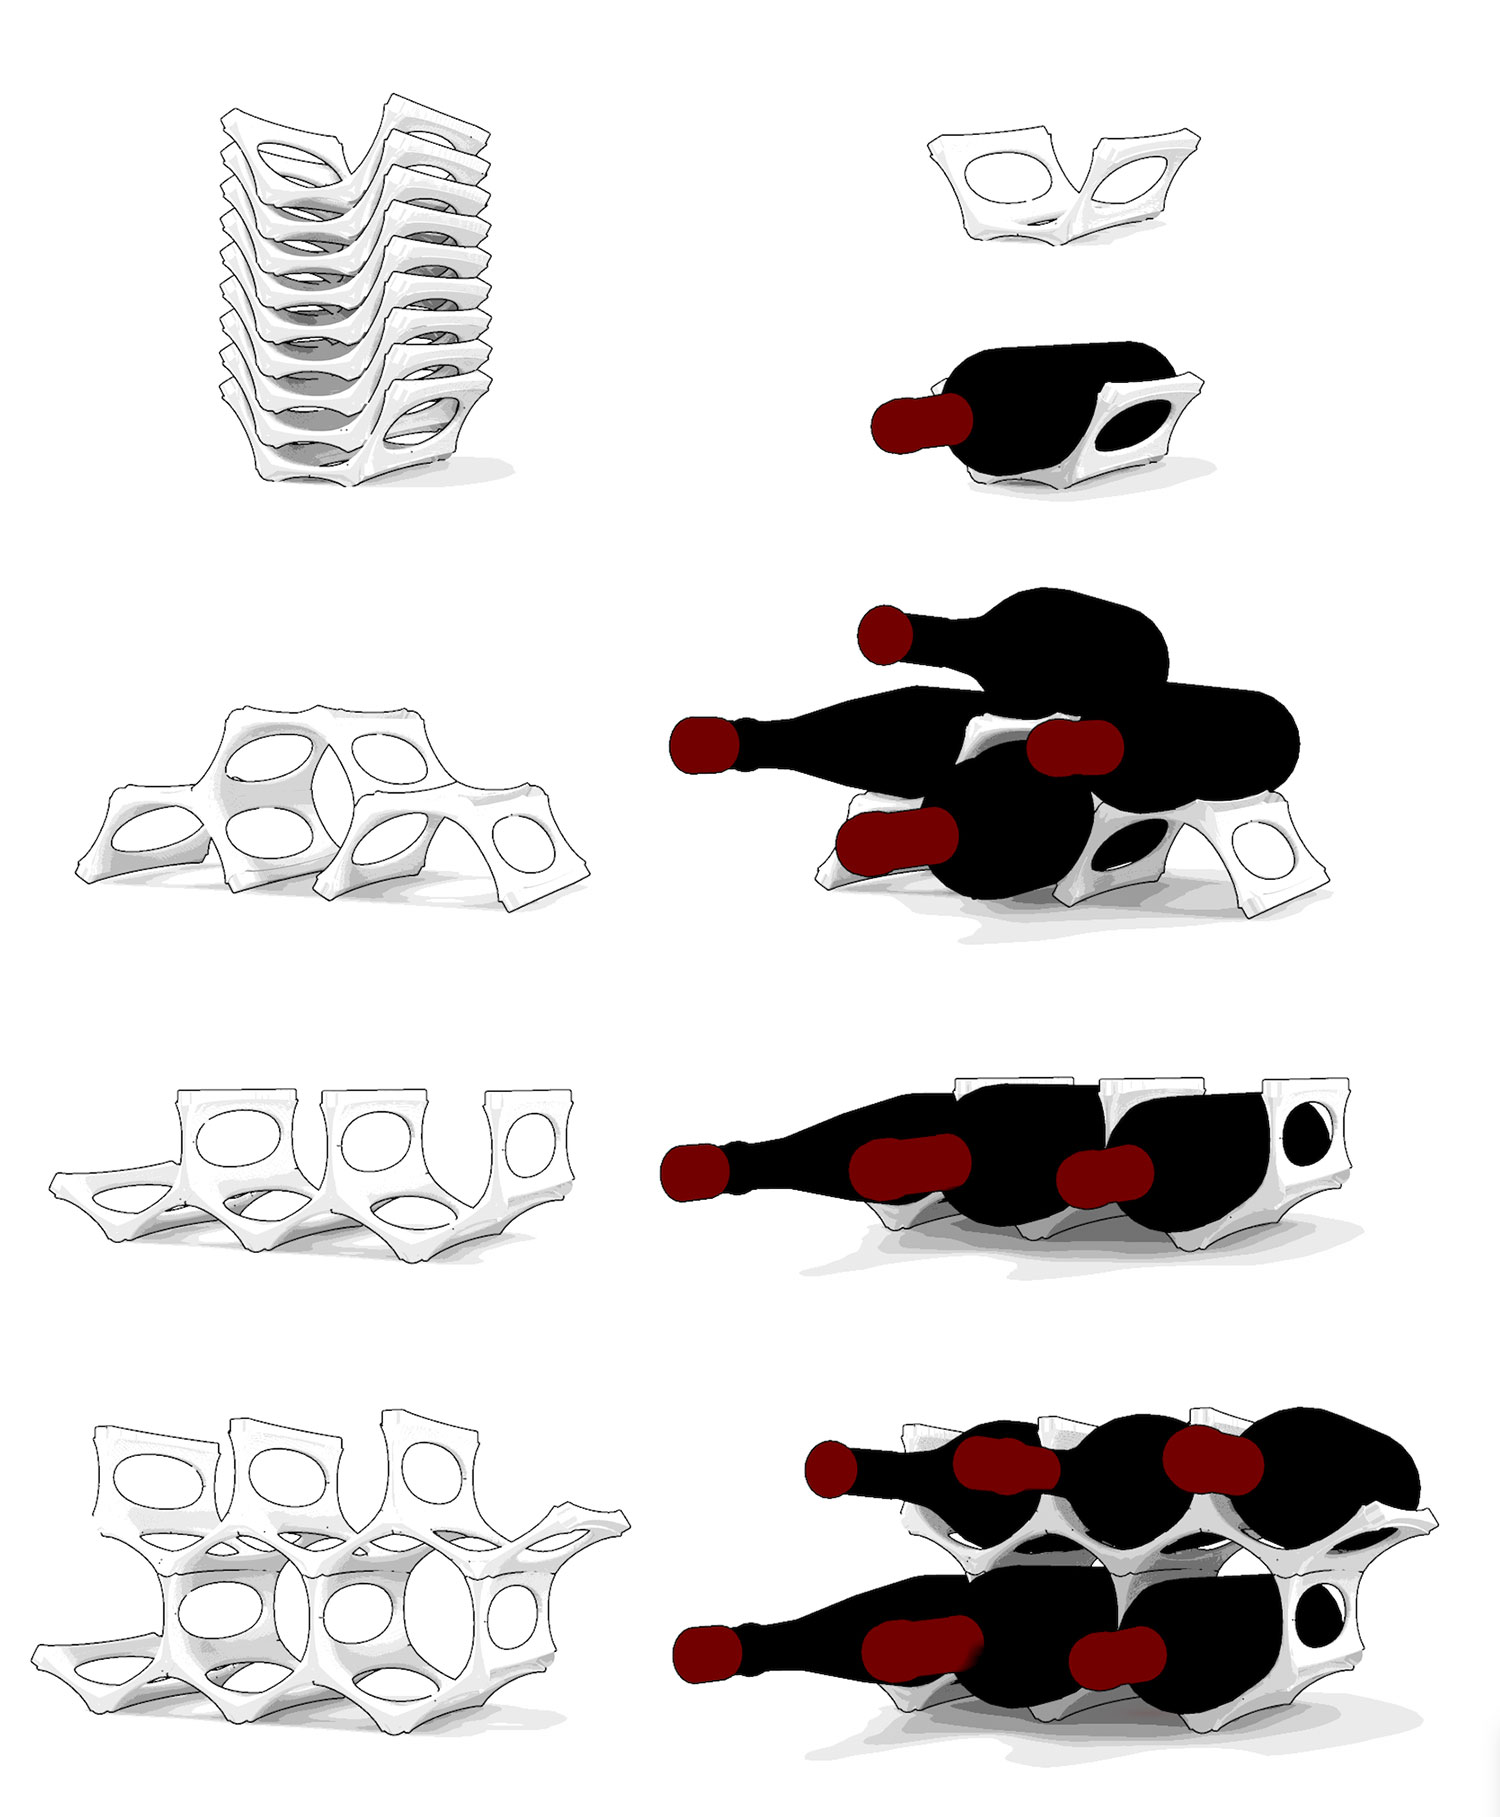 gustavino_configurations_sketches